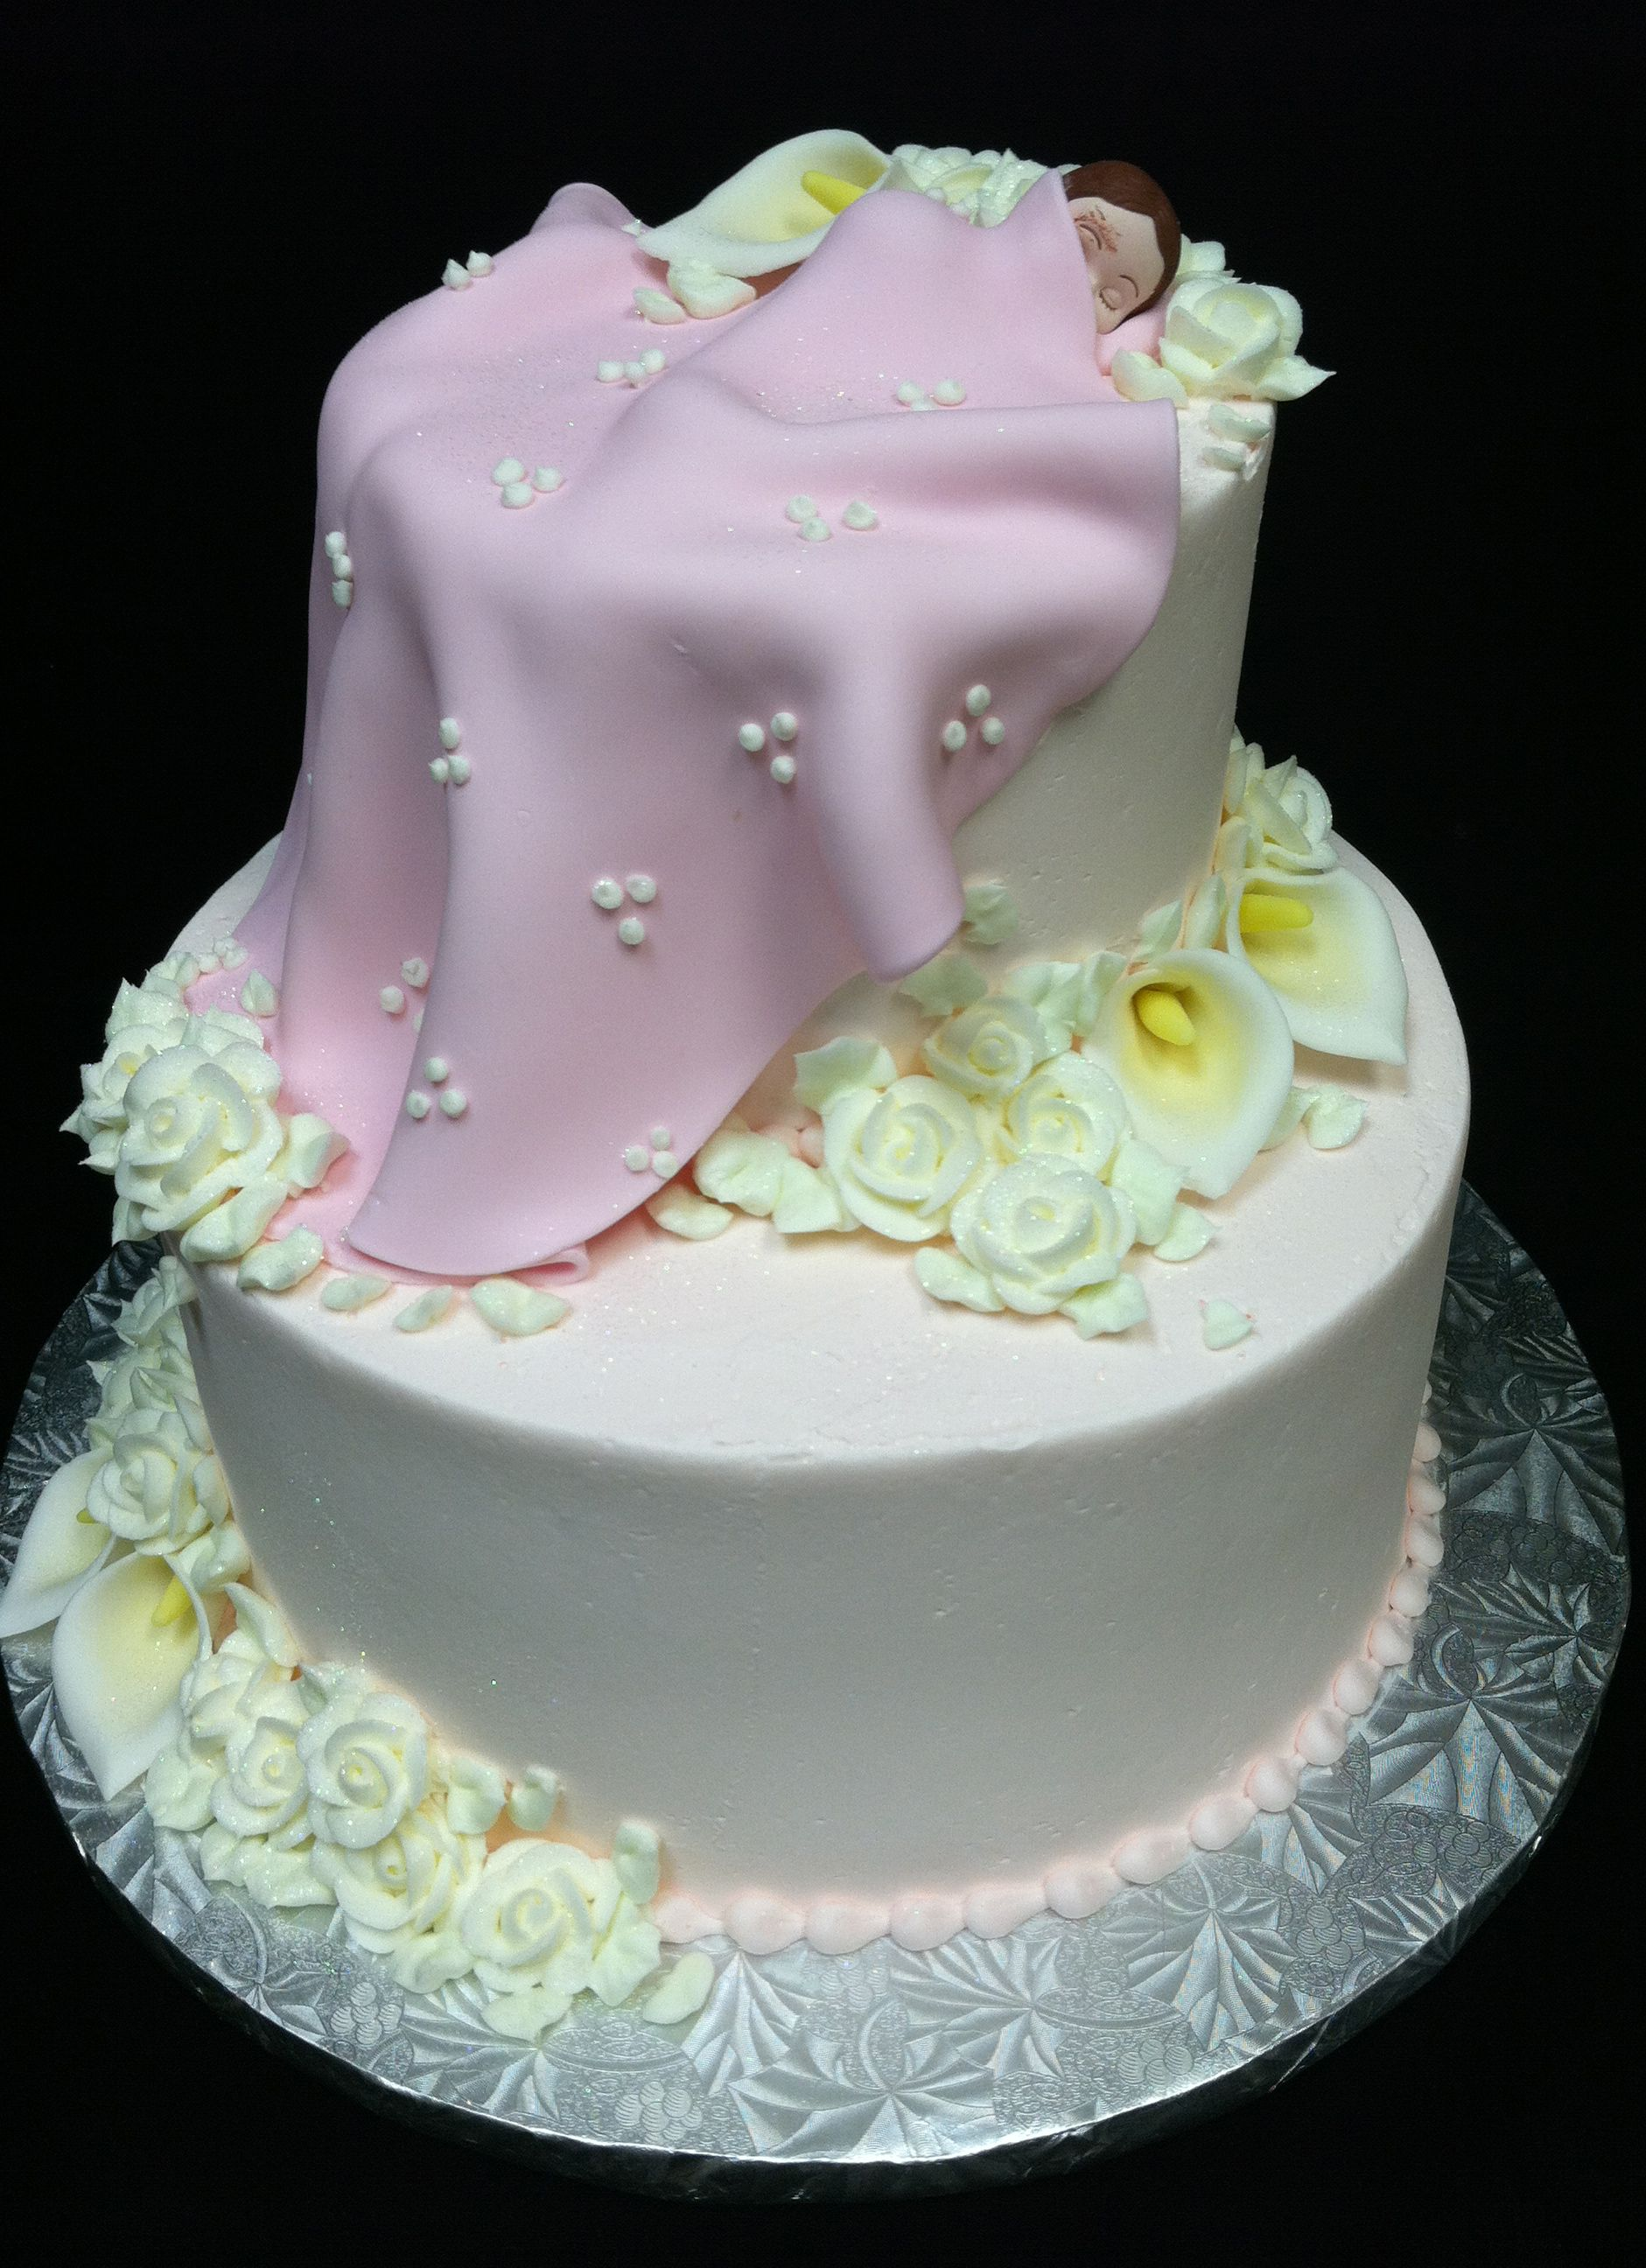 How precious, tucked in for a little nap! Adorable baby shower cake from www.puffymuffin.com